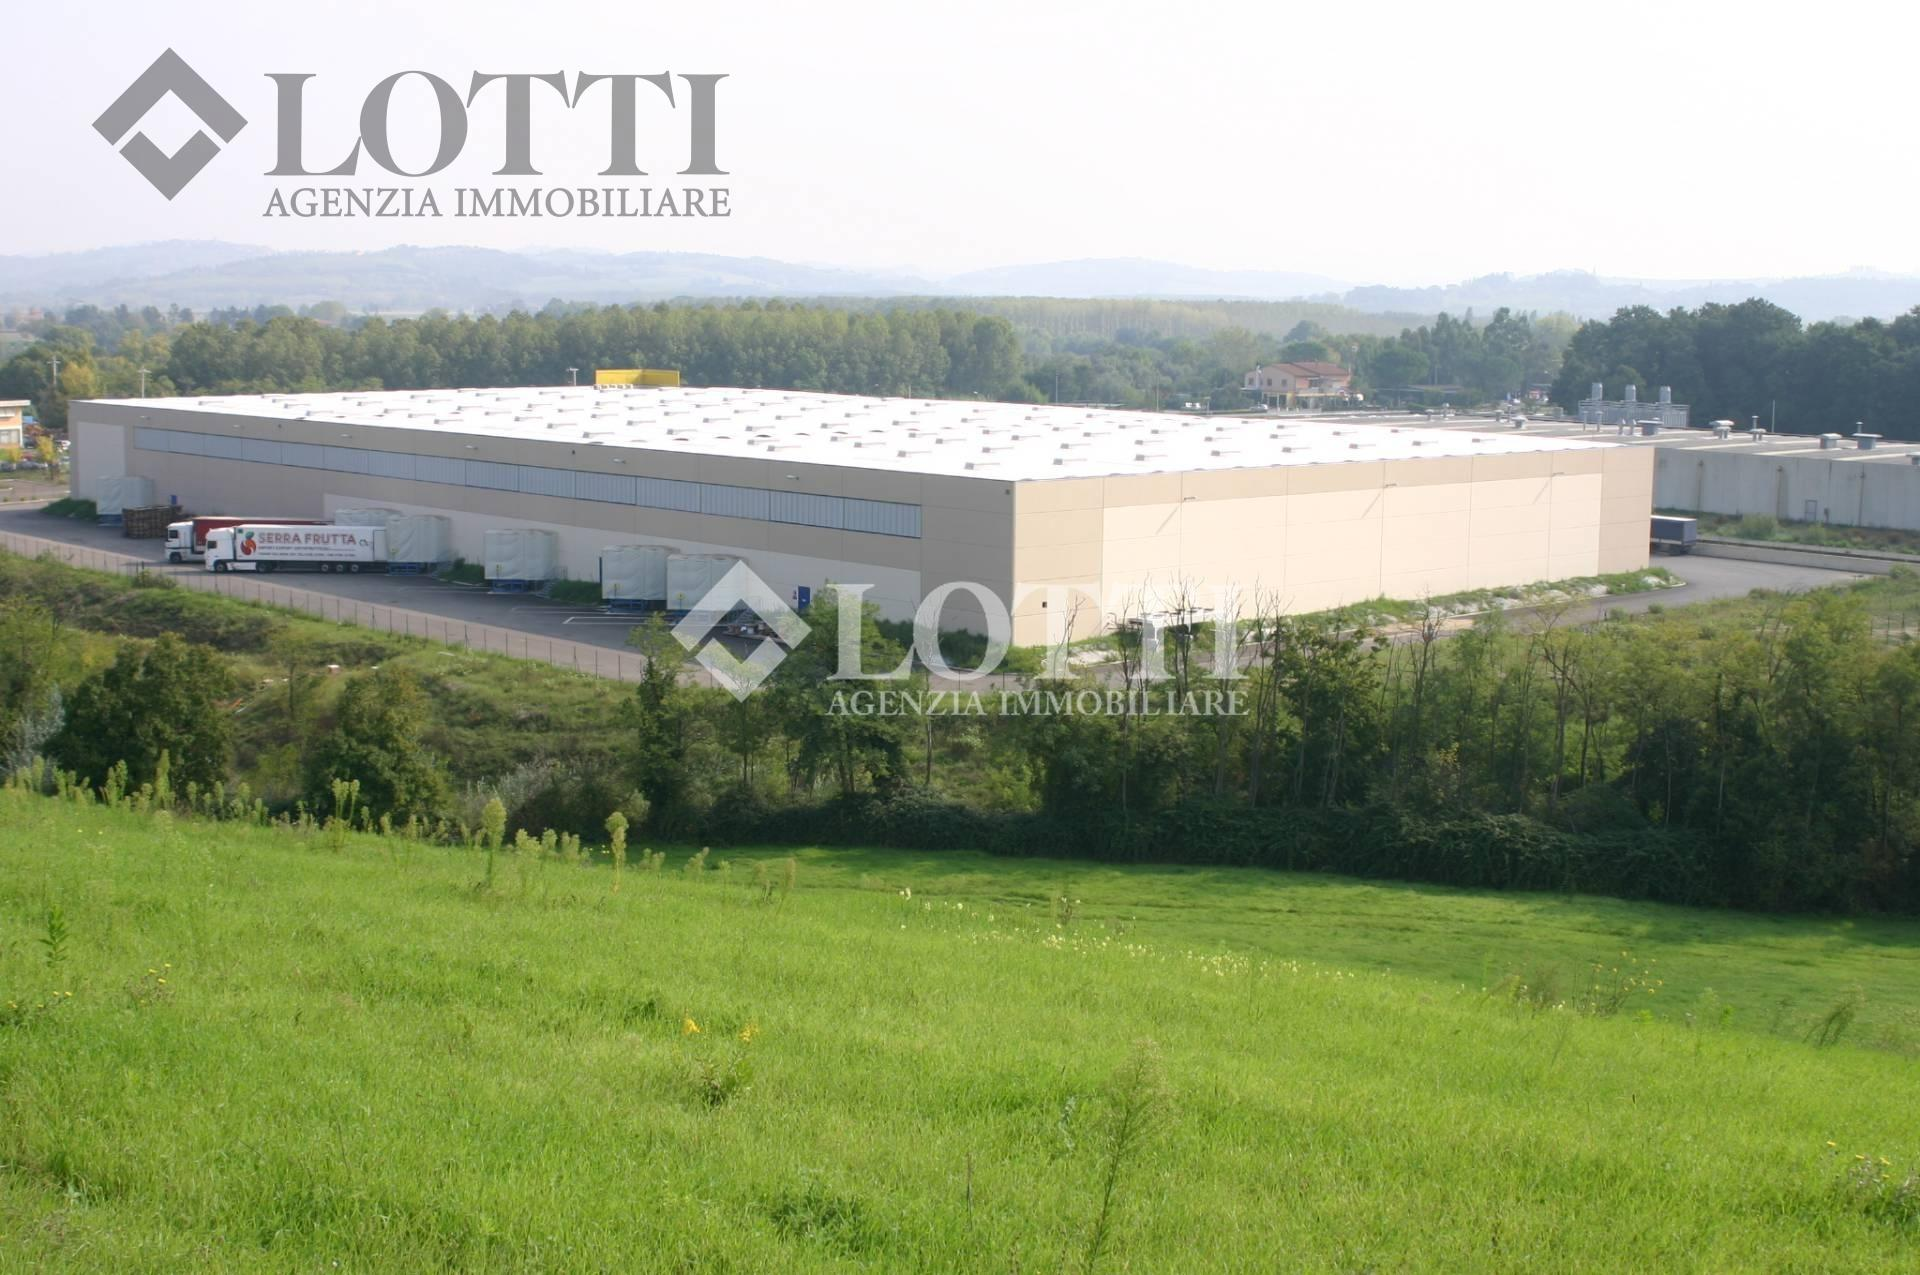 Industrial depot for sale in Selvatelle, Terricciola (PI)